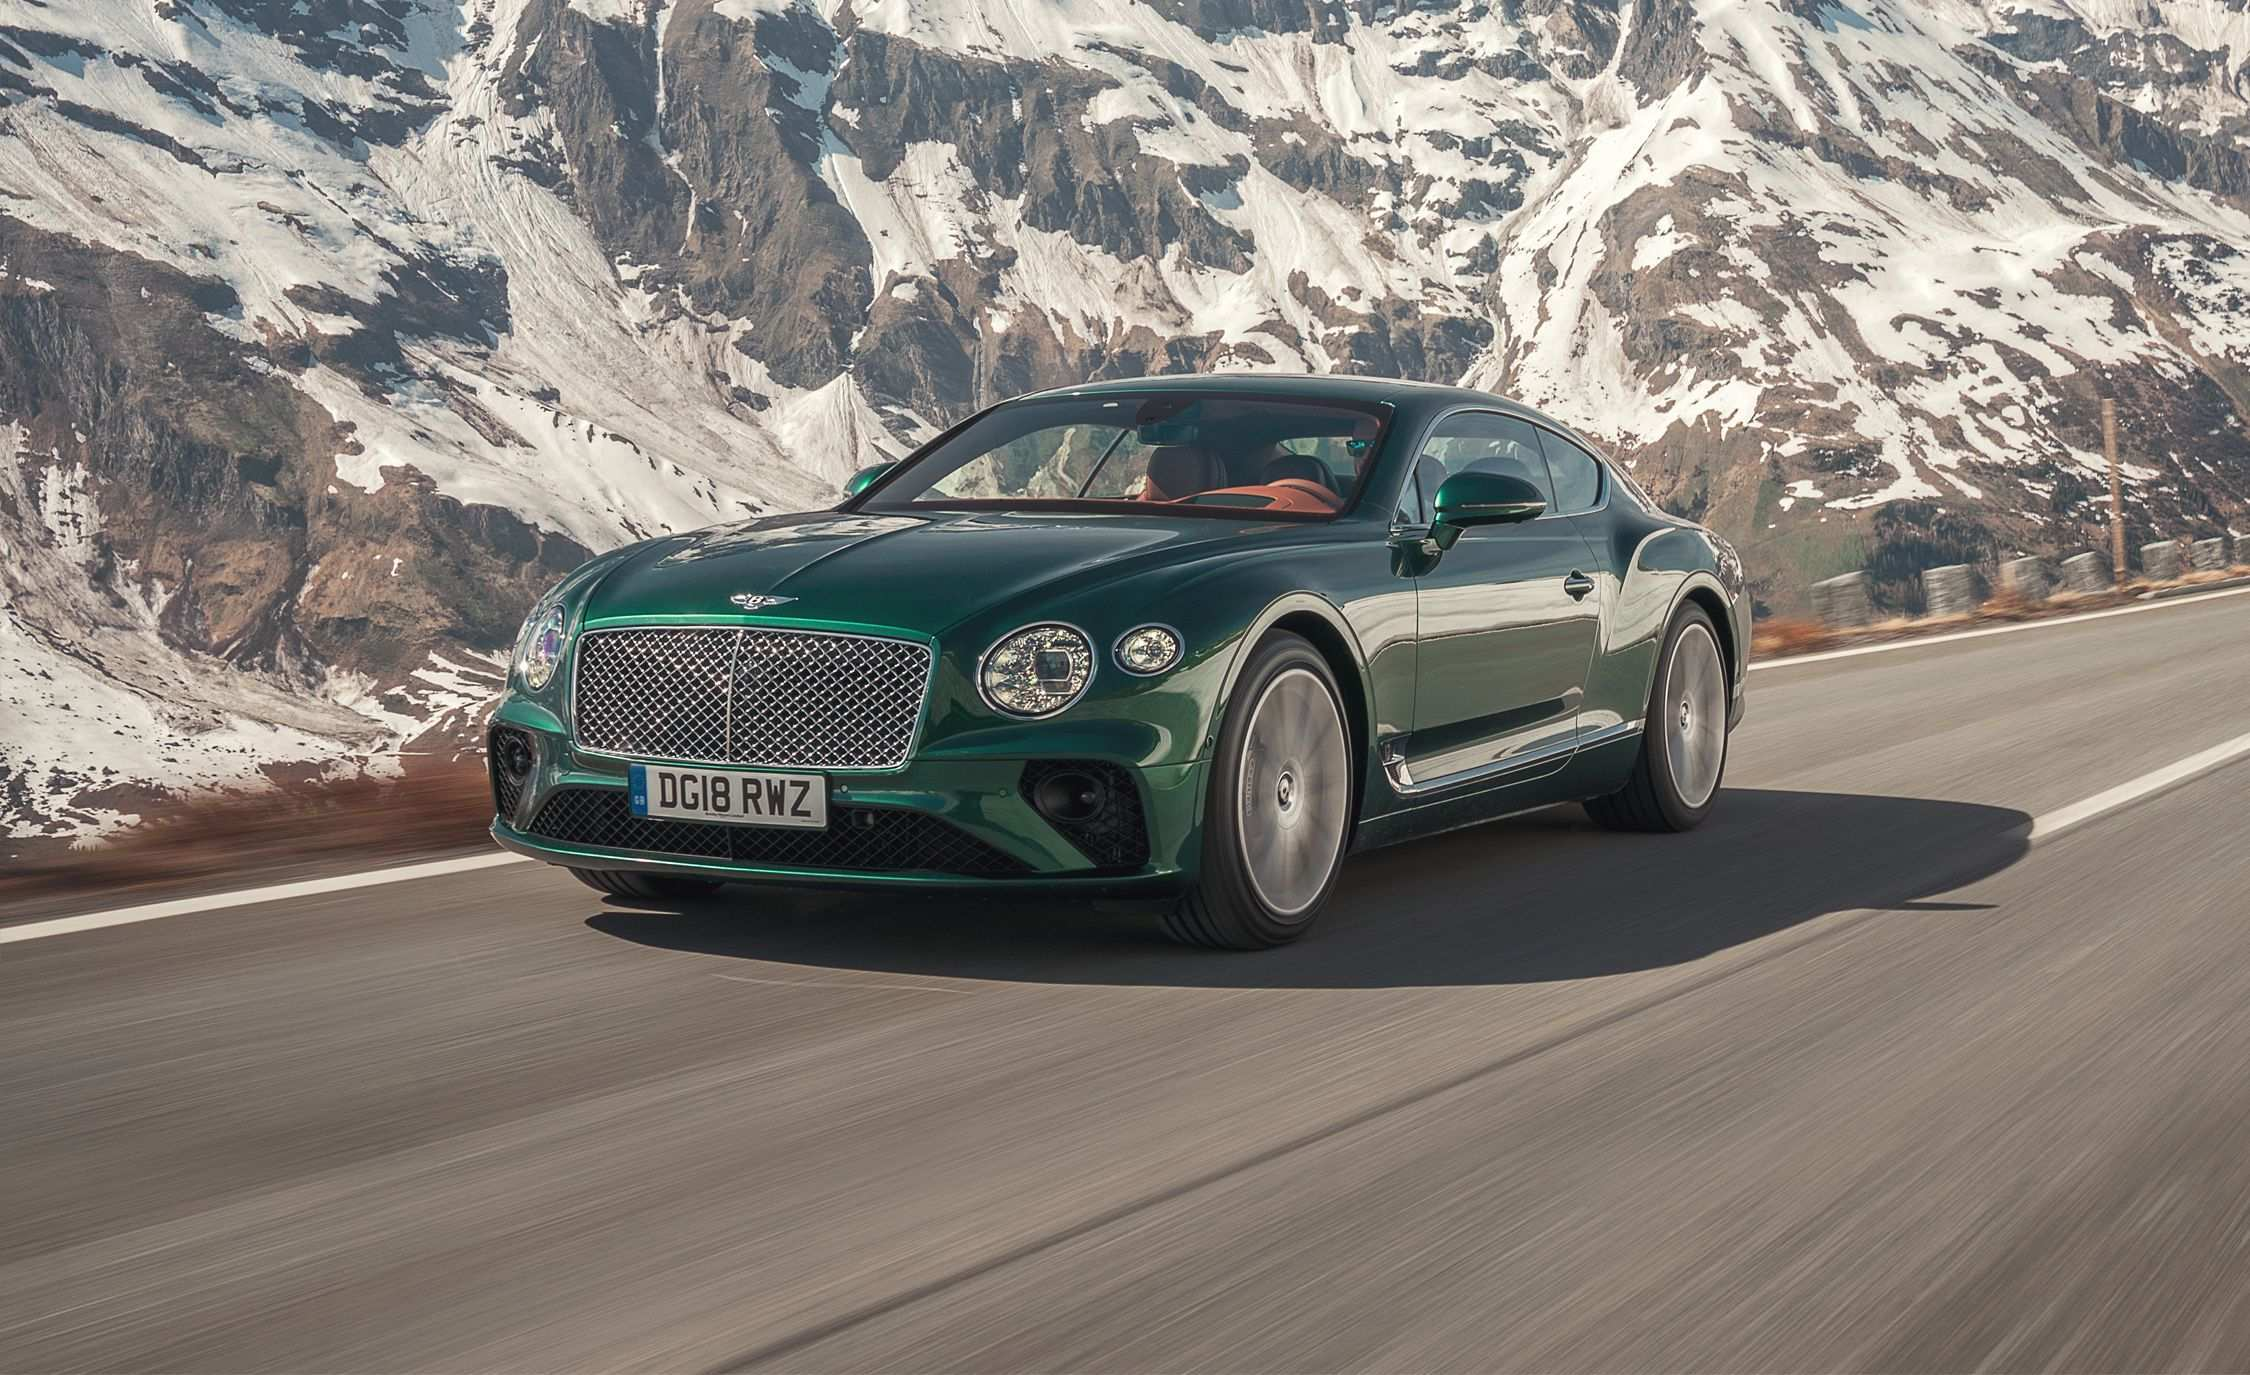 96 Gallery of 2019 Bentley Continental Gtc Specs for 2019 Bentley Continental Gtc